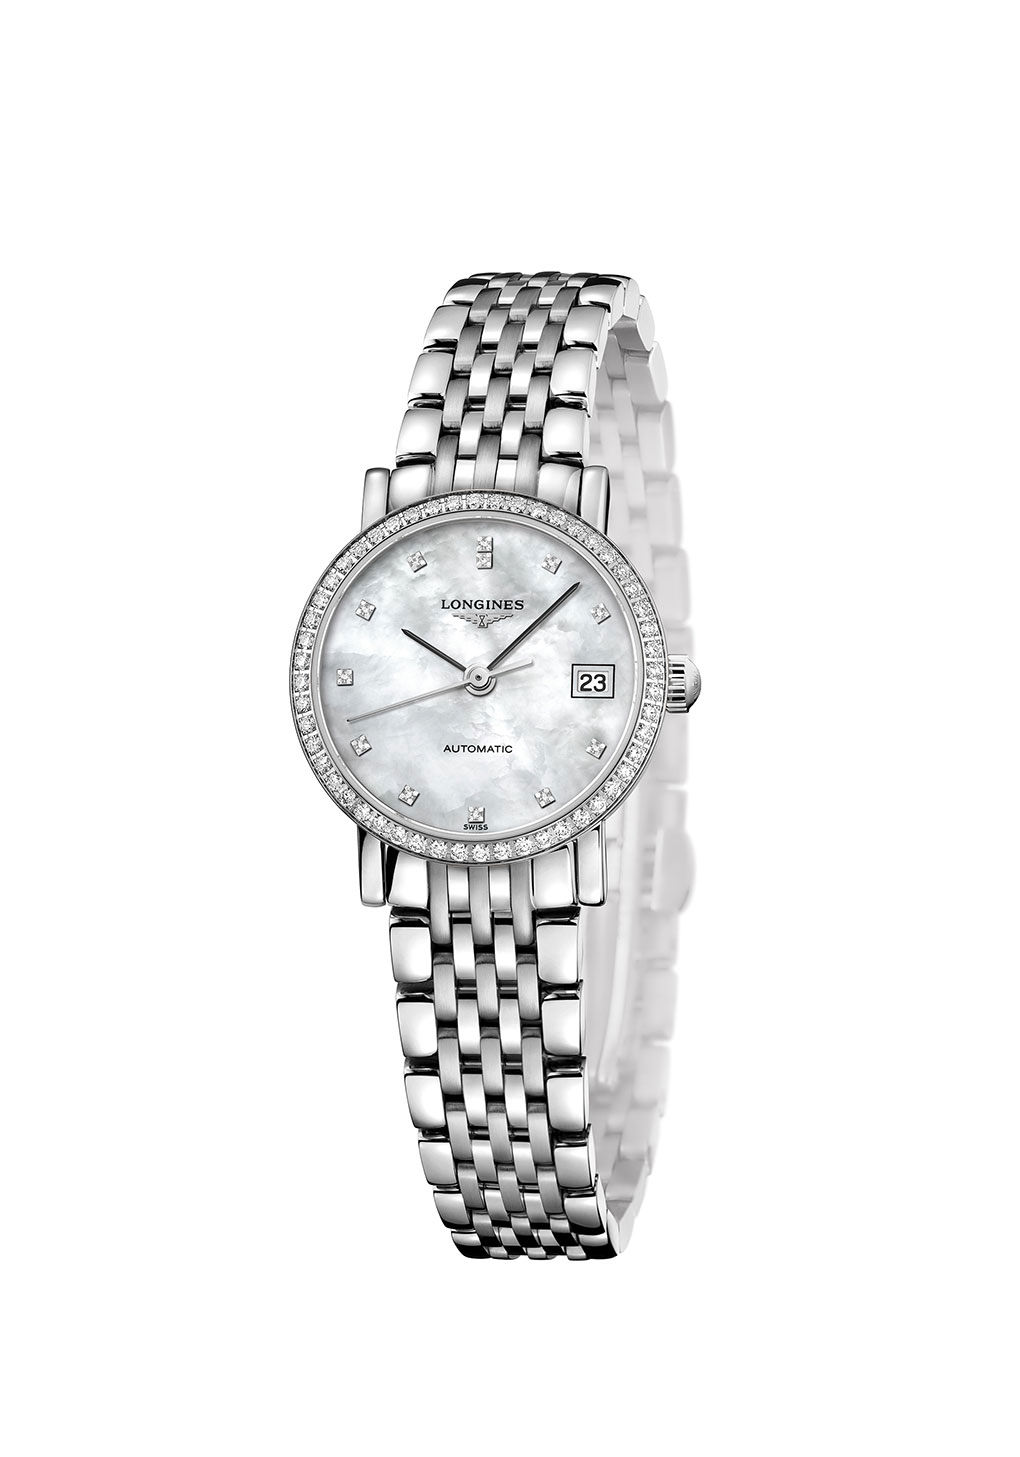 The Longines Elegant Collection A Definition Of Elegance